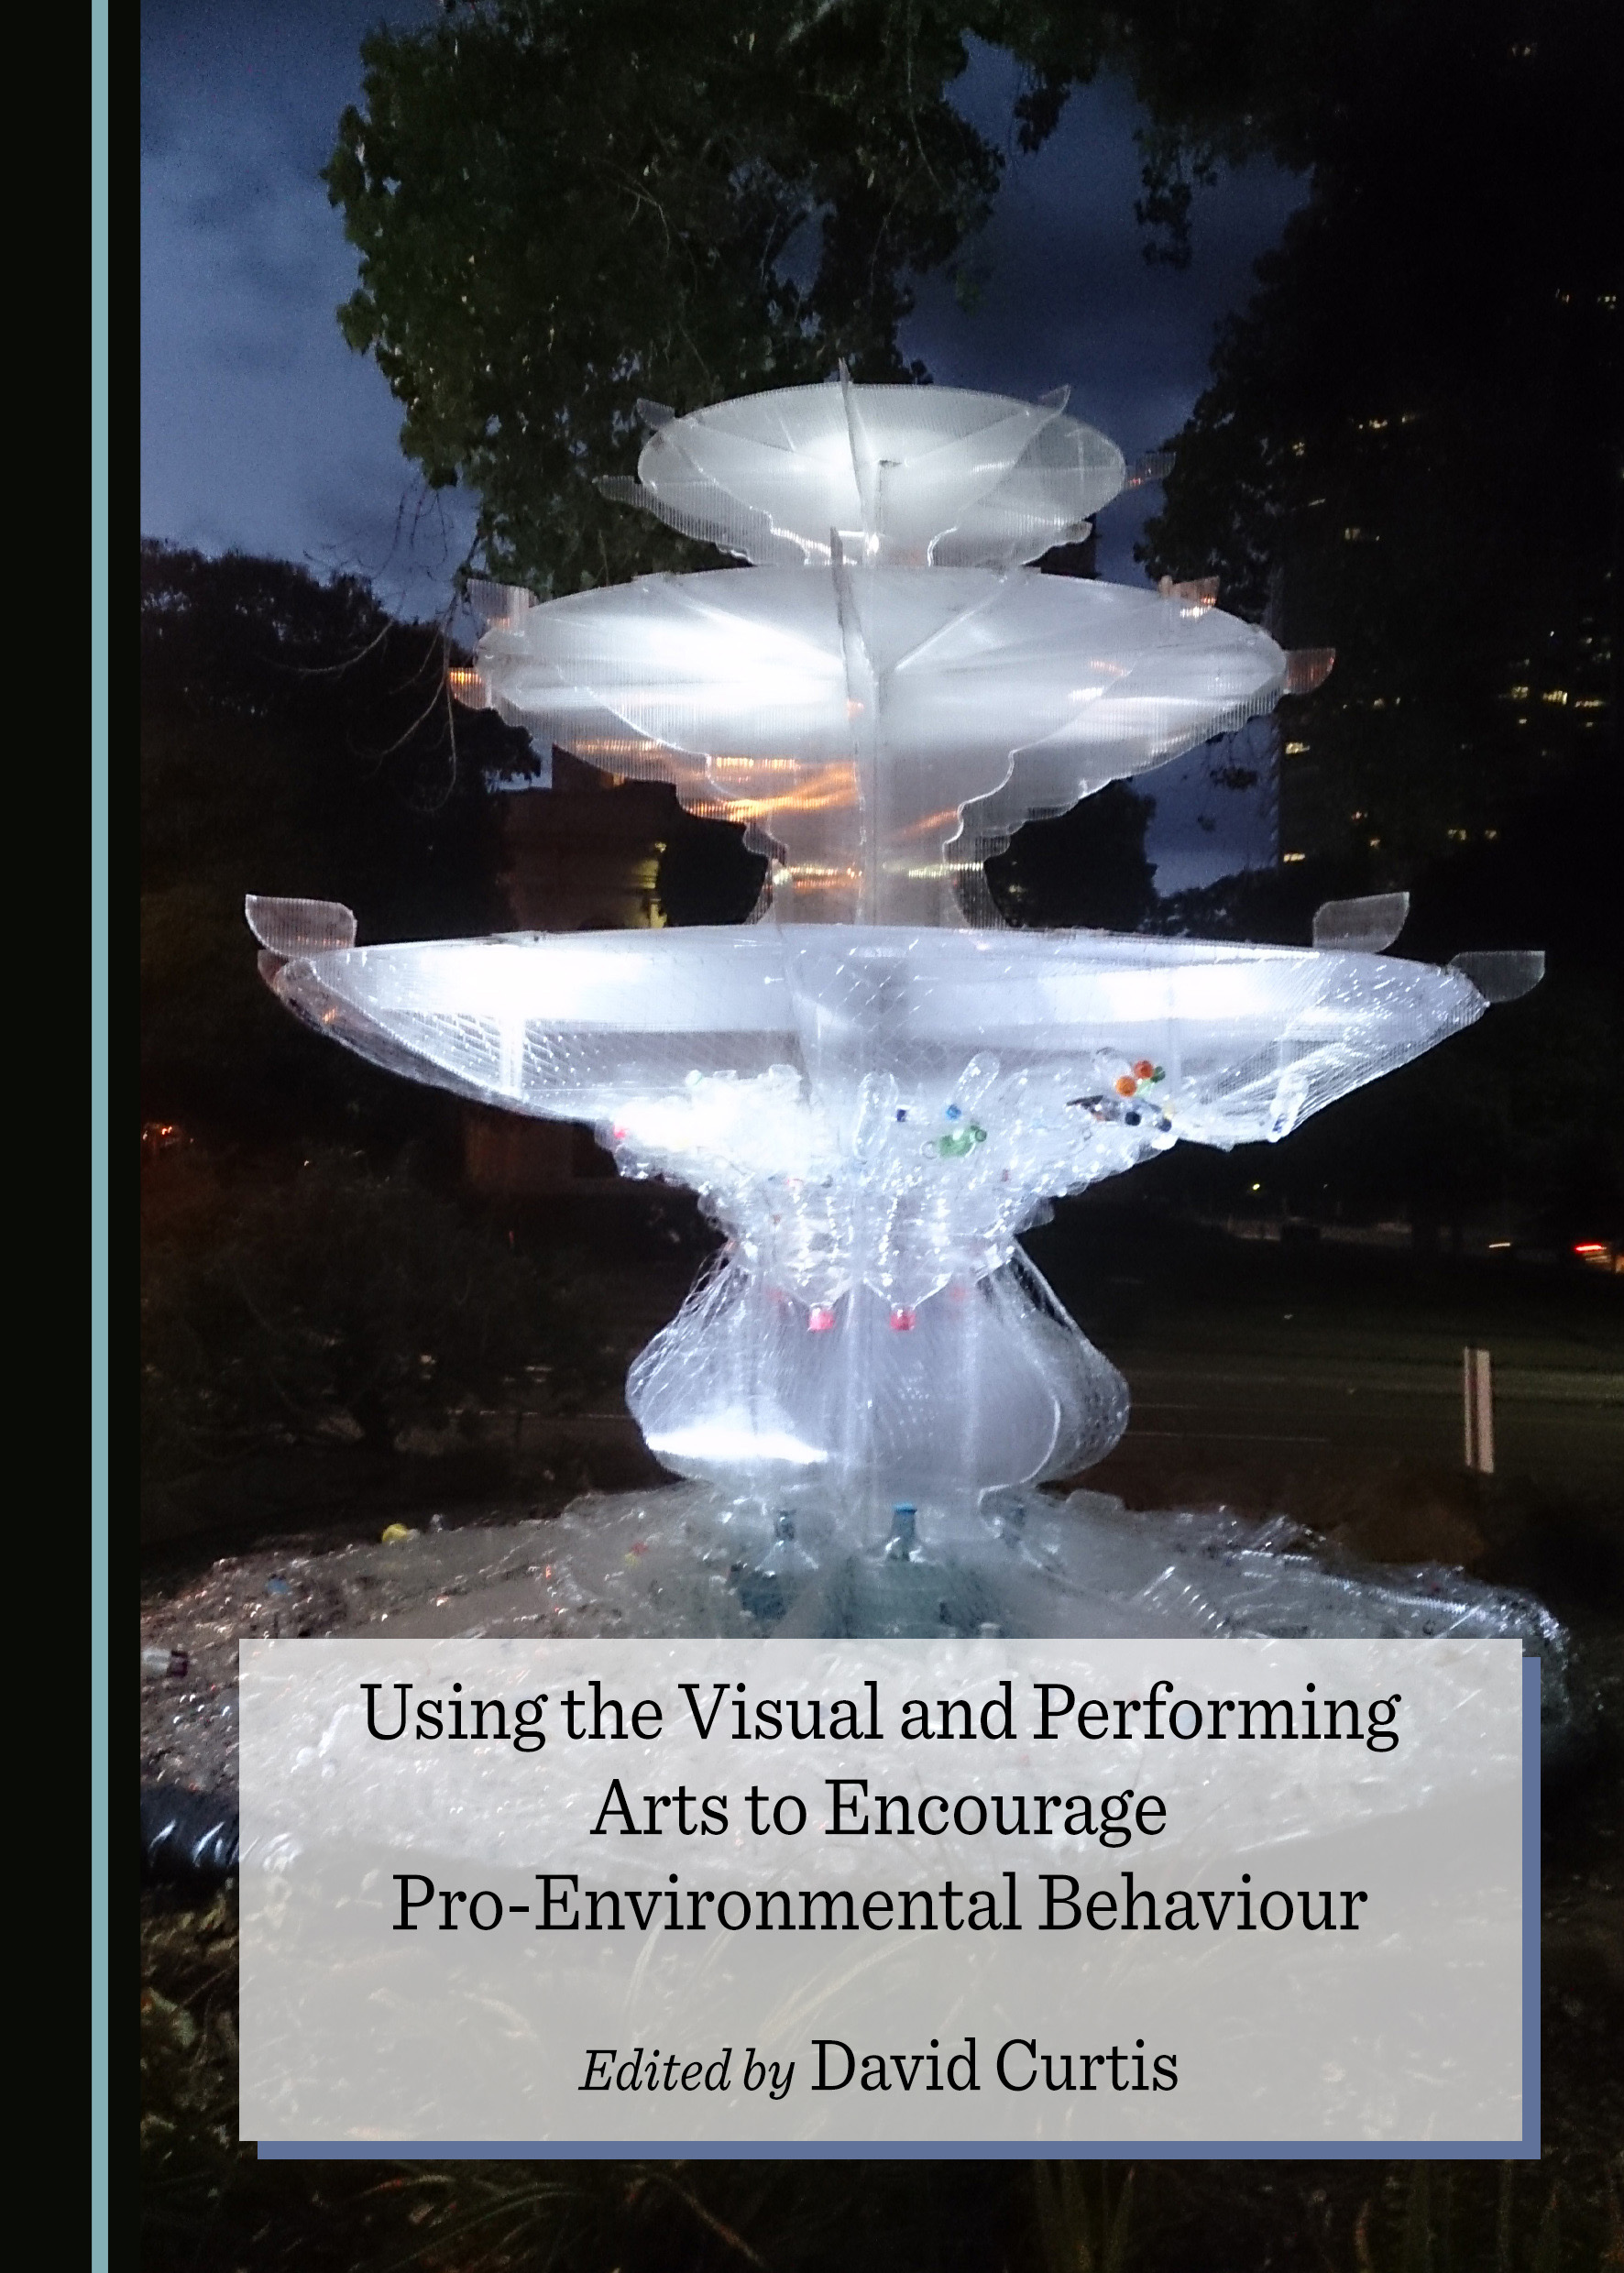 Using the Visual and Performing Arts to Encourage Pro-Environmental Behaviour